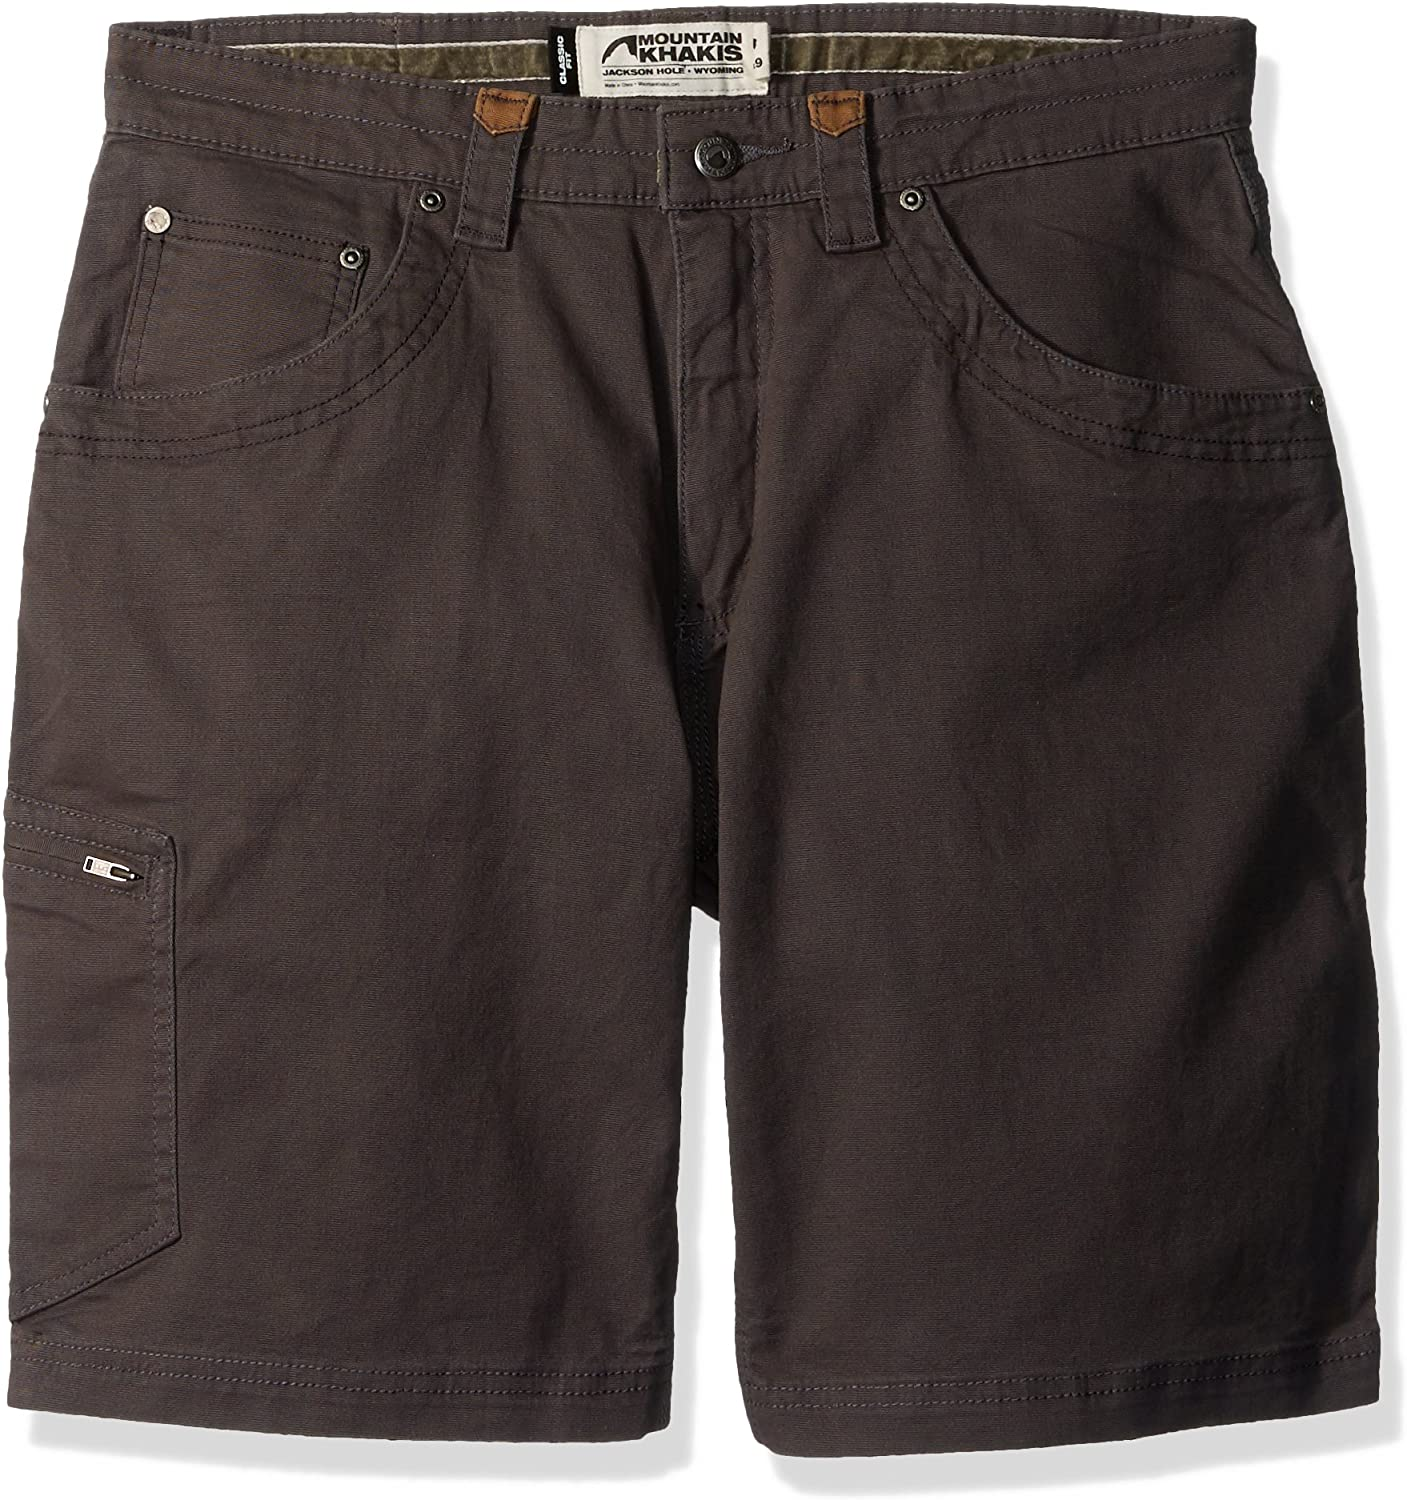 Mountain Khakis Men's Camber 107 Short Classic Fit